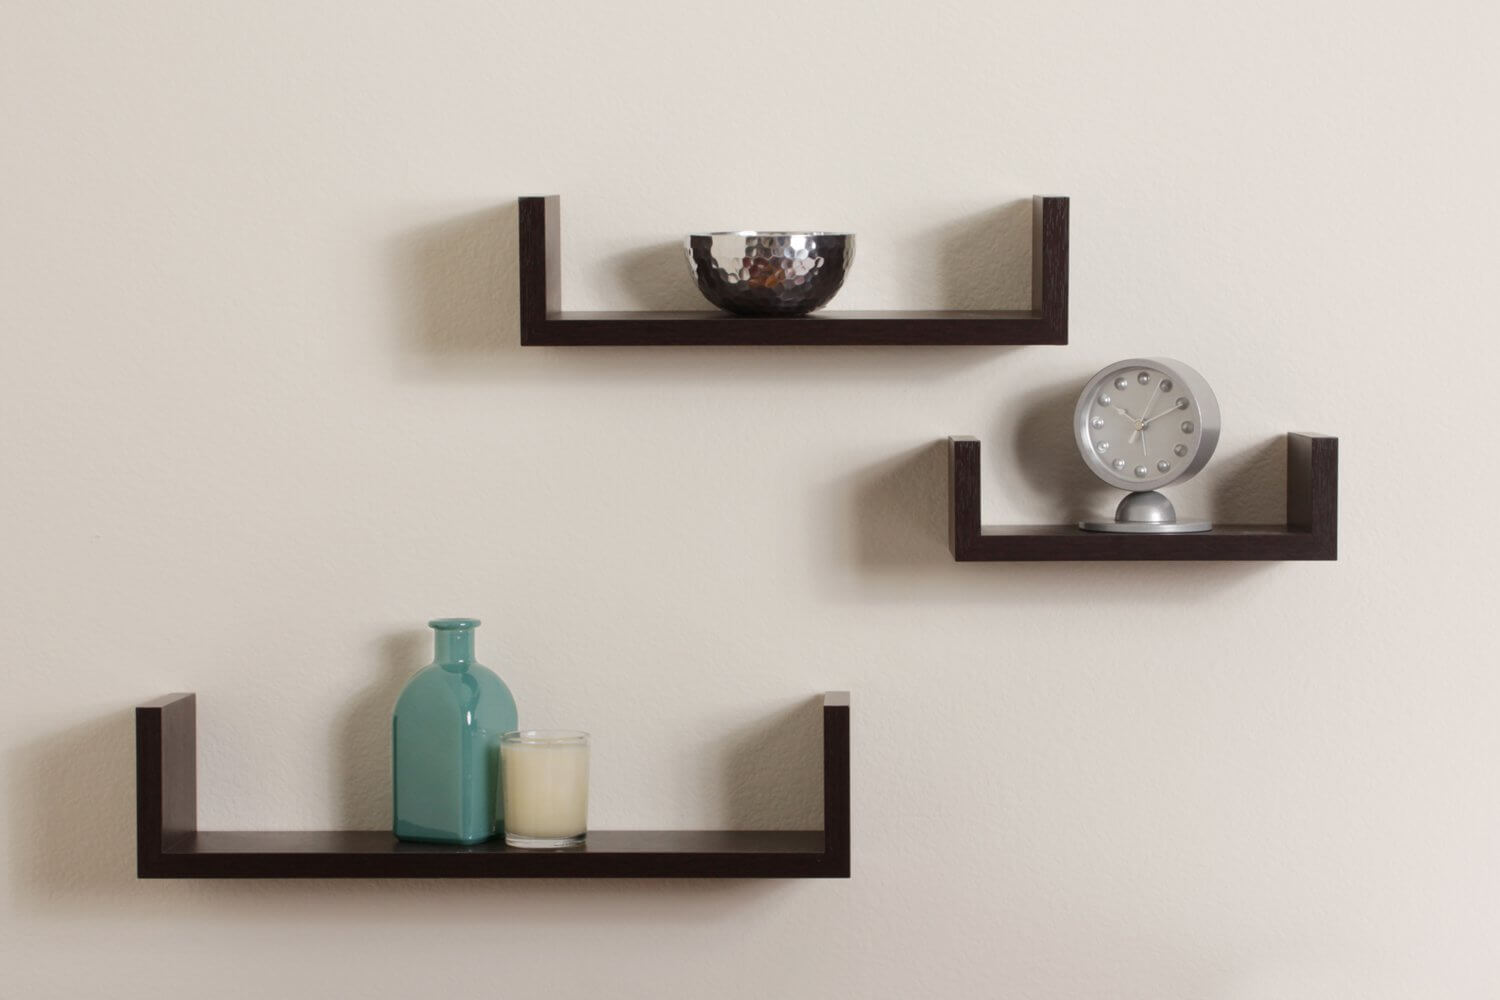 These simple shelves don't take up too much room, and would look great with a variety of styles.